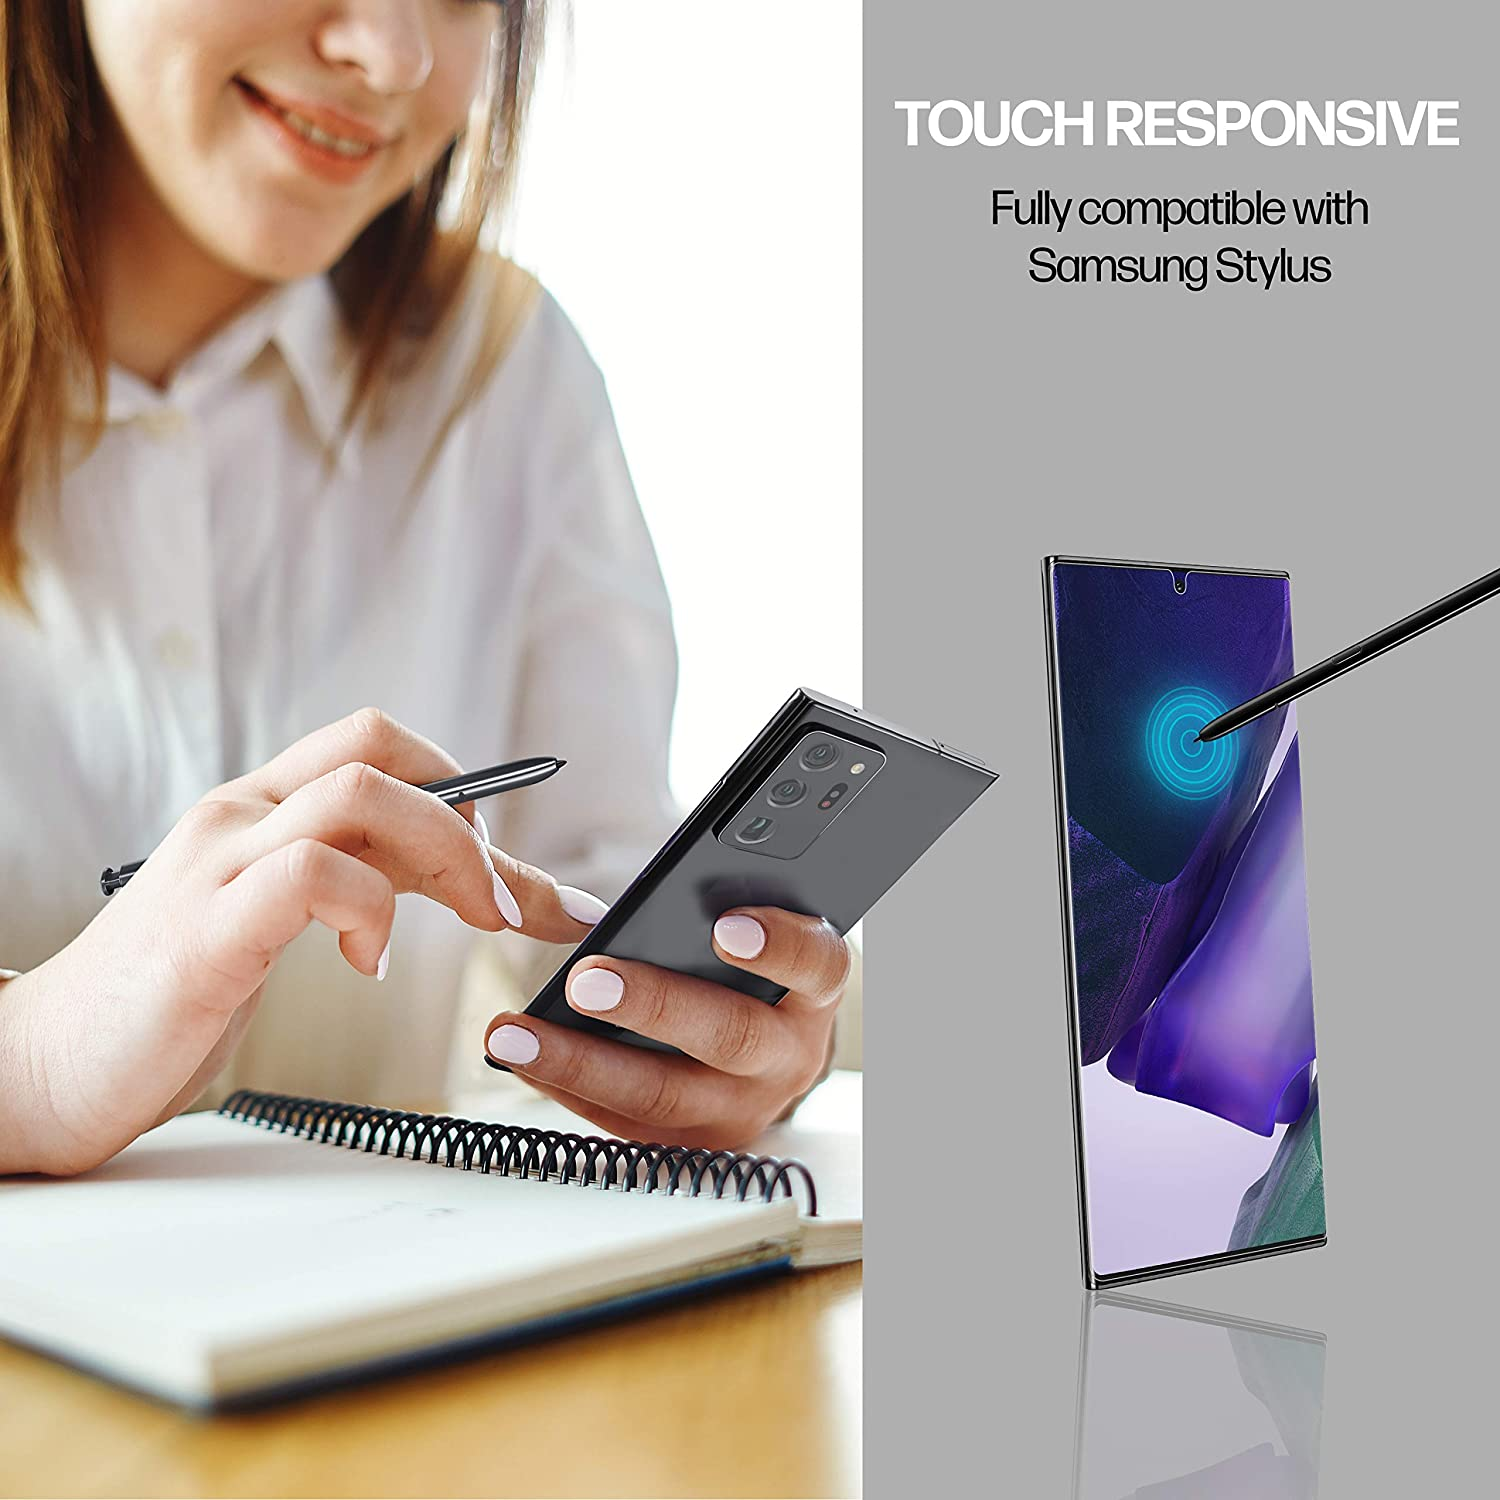 Power Theory Samsung Galaxy Note 20 ULTRA Screen Protector [2-pack]